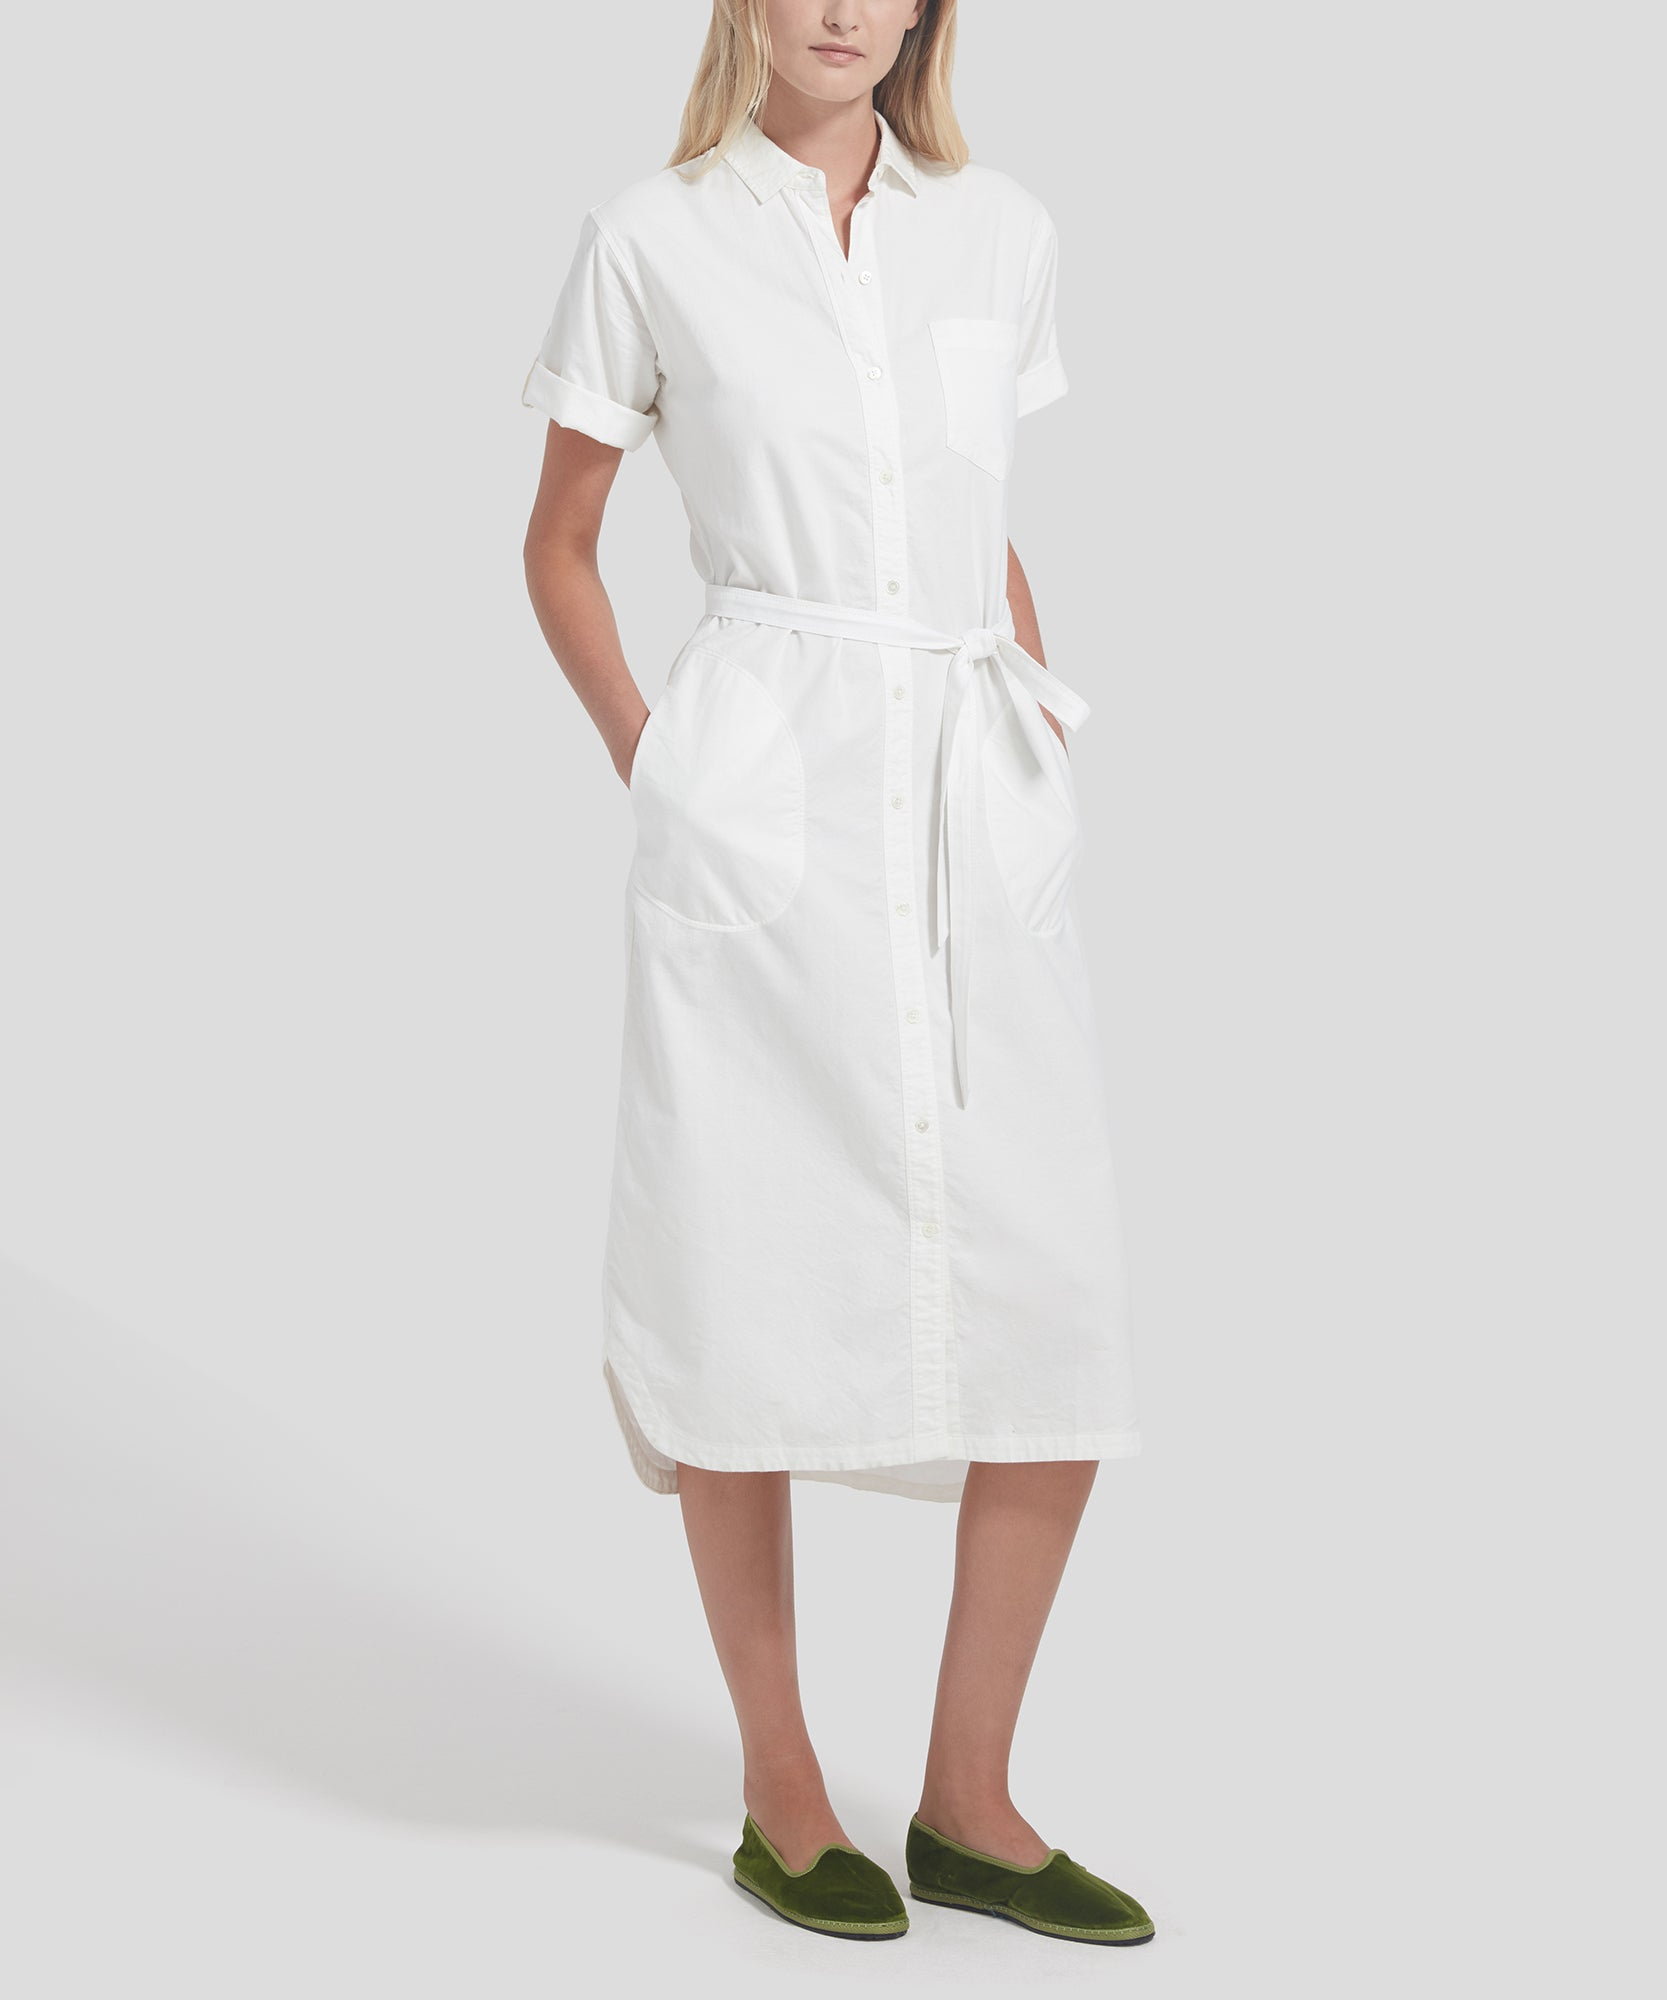 ATM Cotton Oxford Short Sleeve Belted Shirt Dress